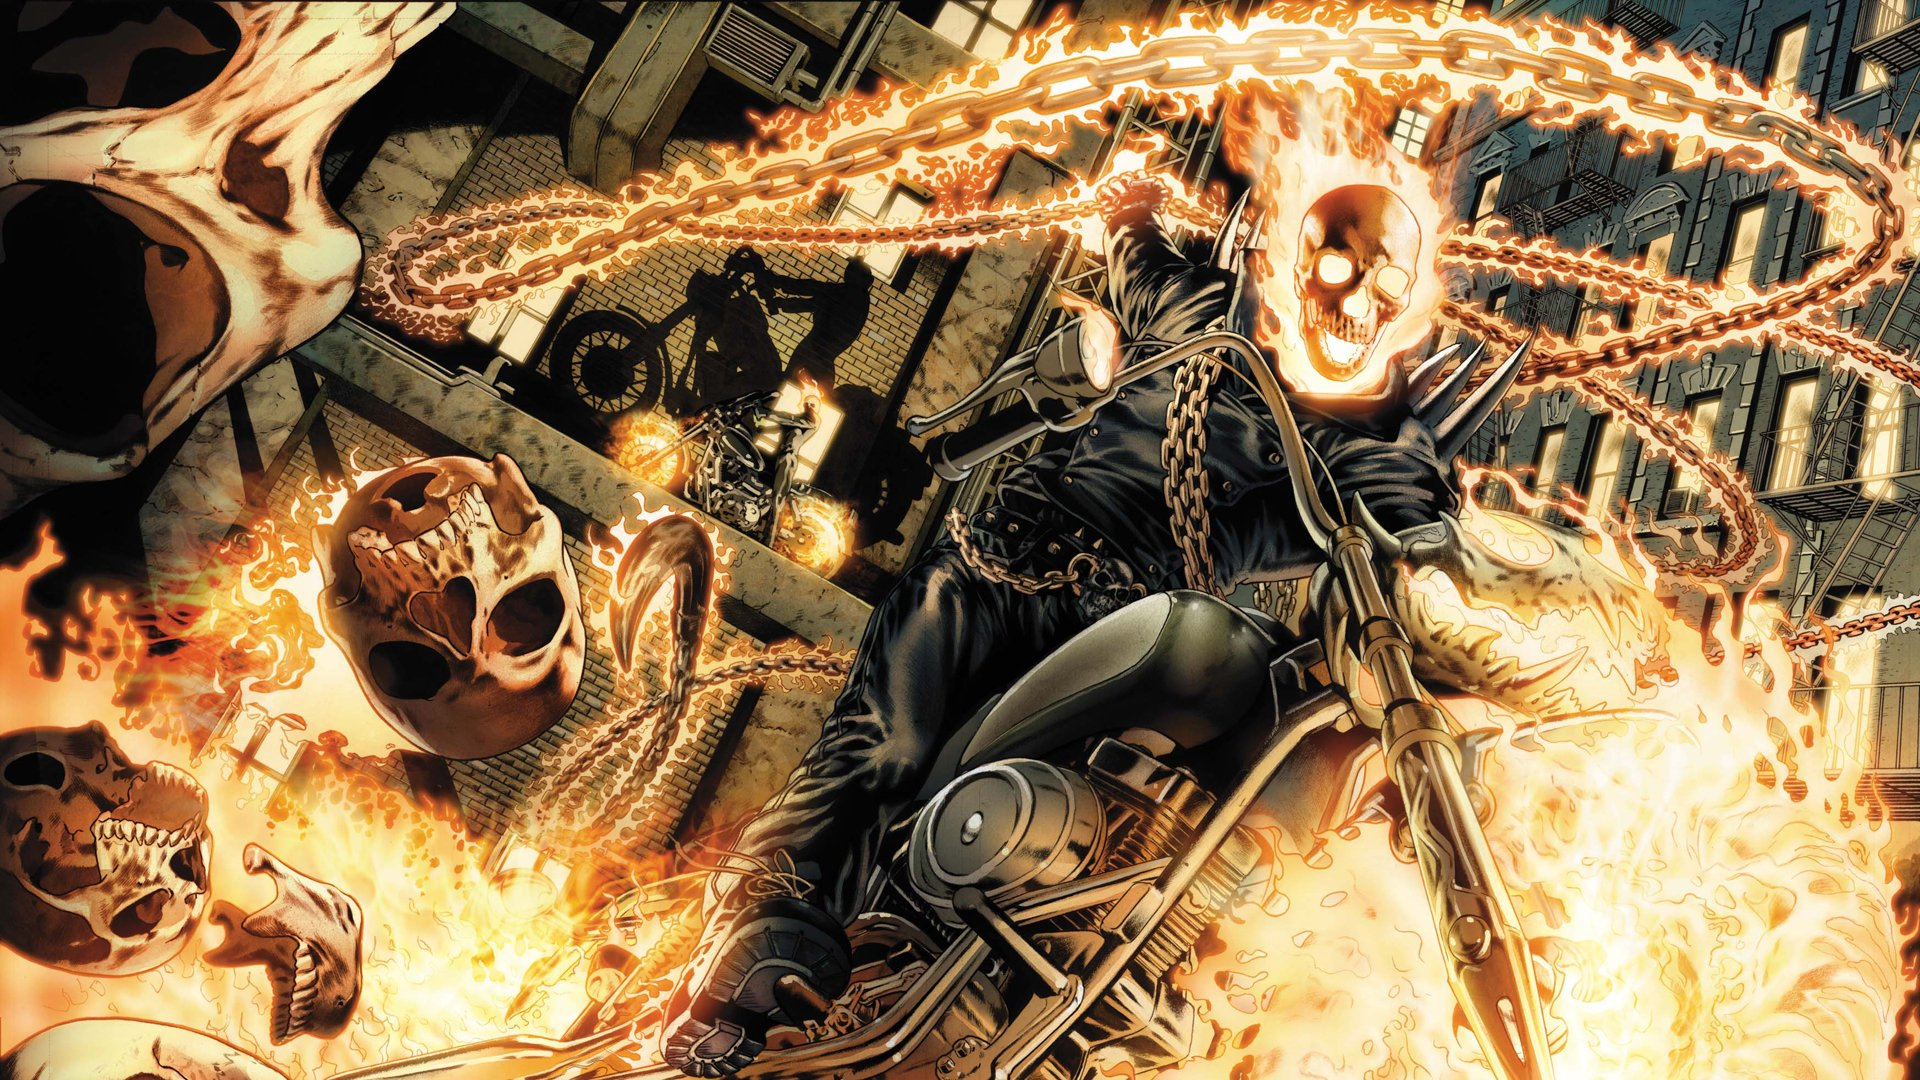 Amazing Wallpaper Marvel Ghost Rider - thumb-1920-221266  Picture_4857.jpg